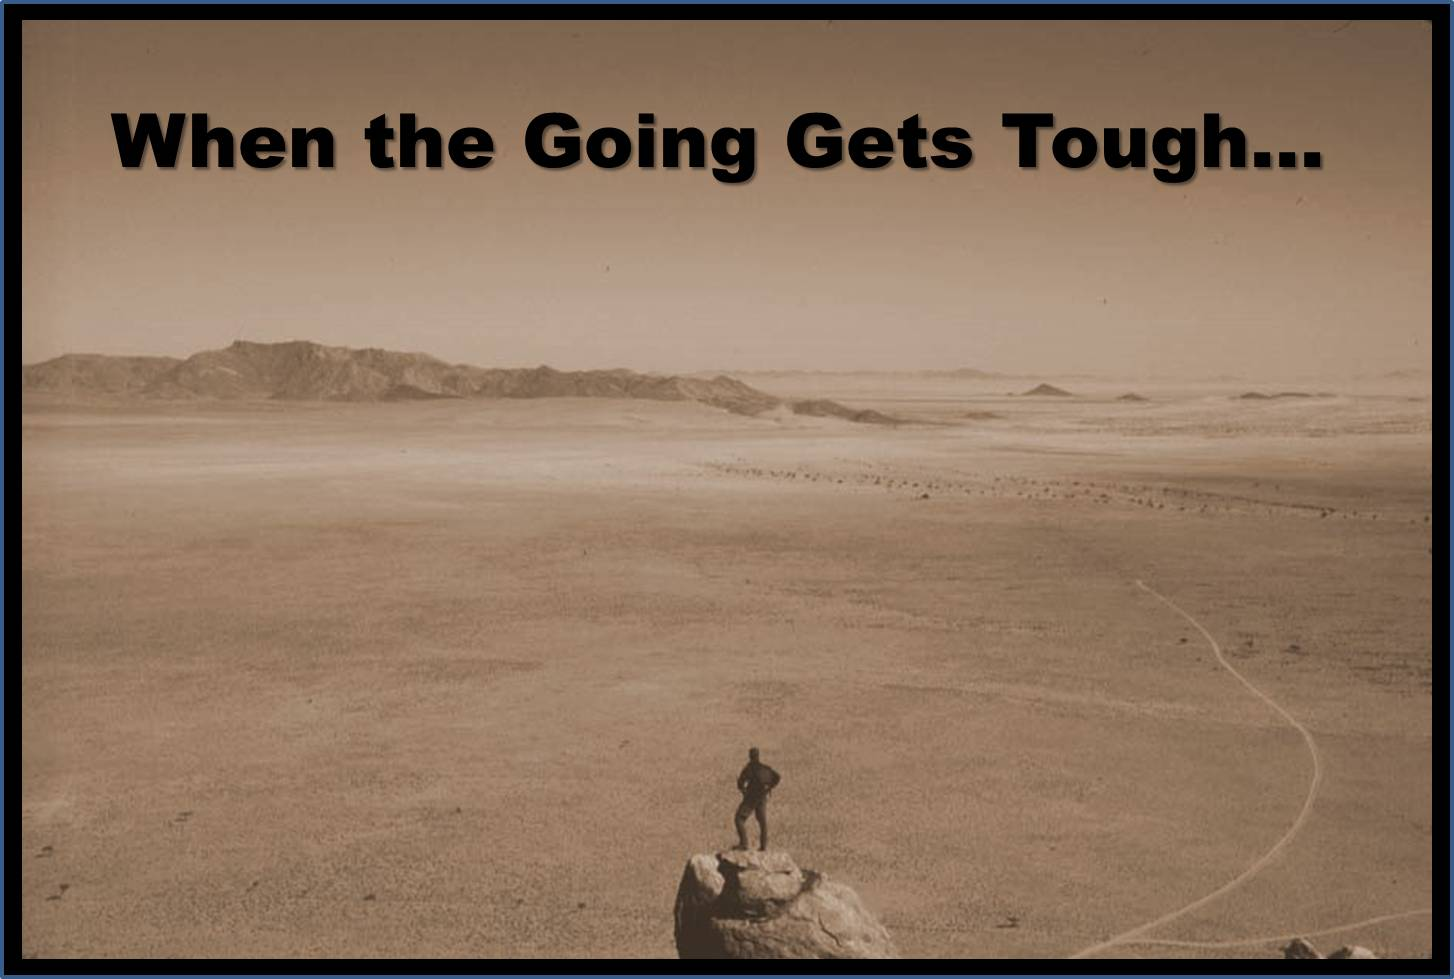 When Going Gets Tough Quotes